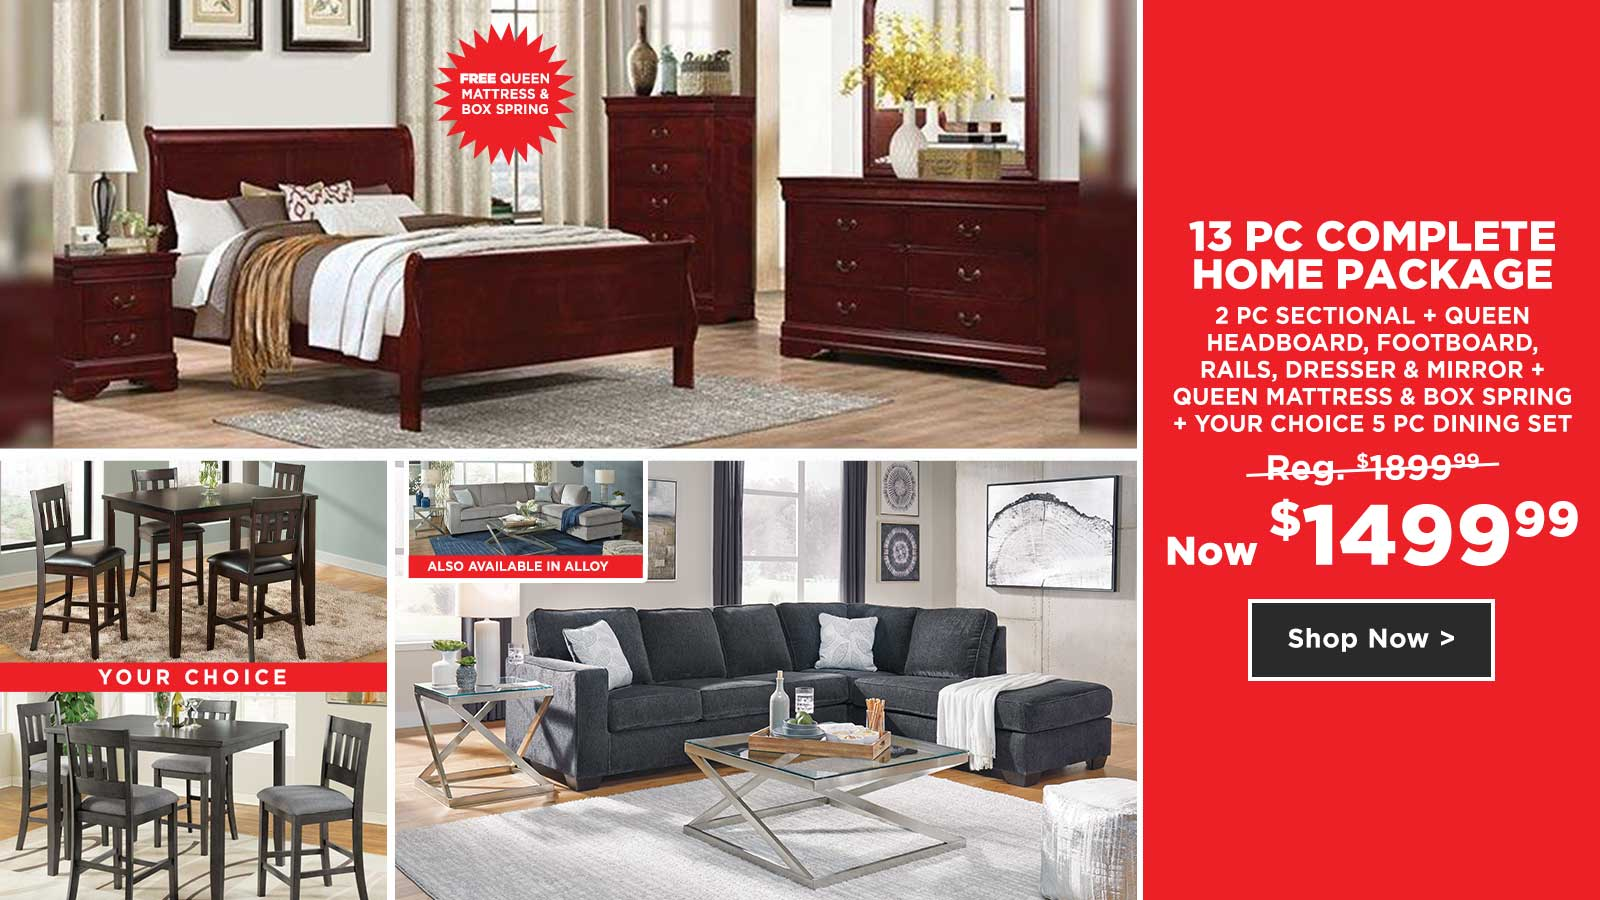 13pc Complete Home Package $1499.99